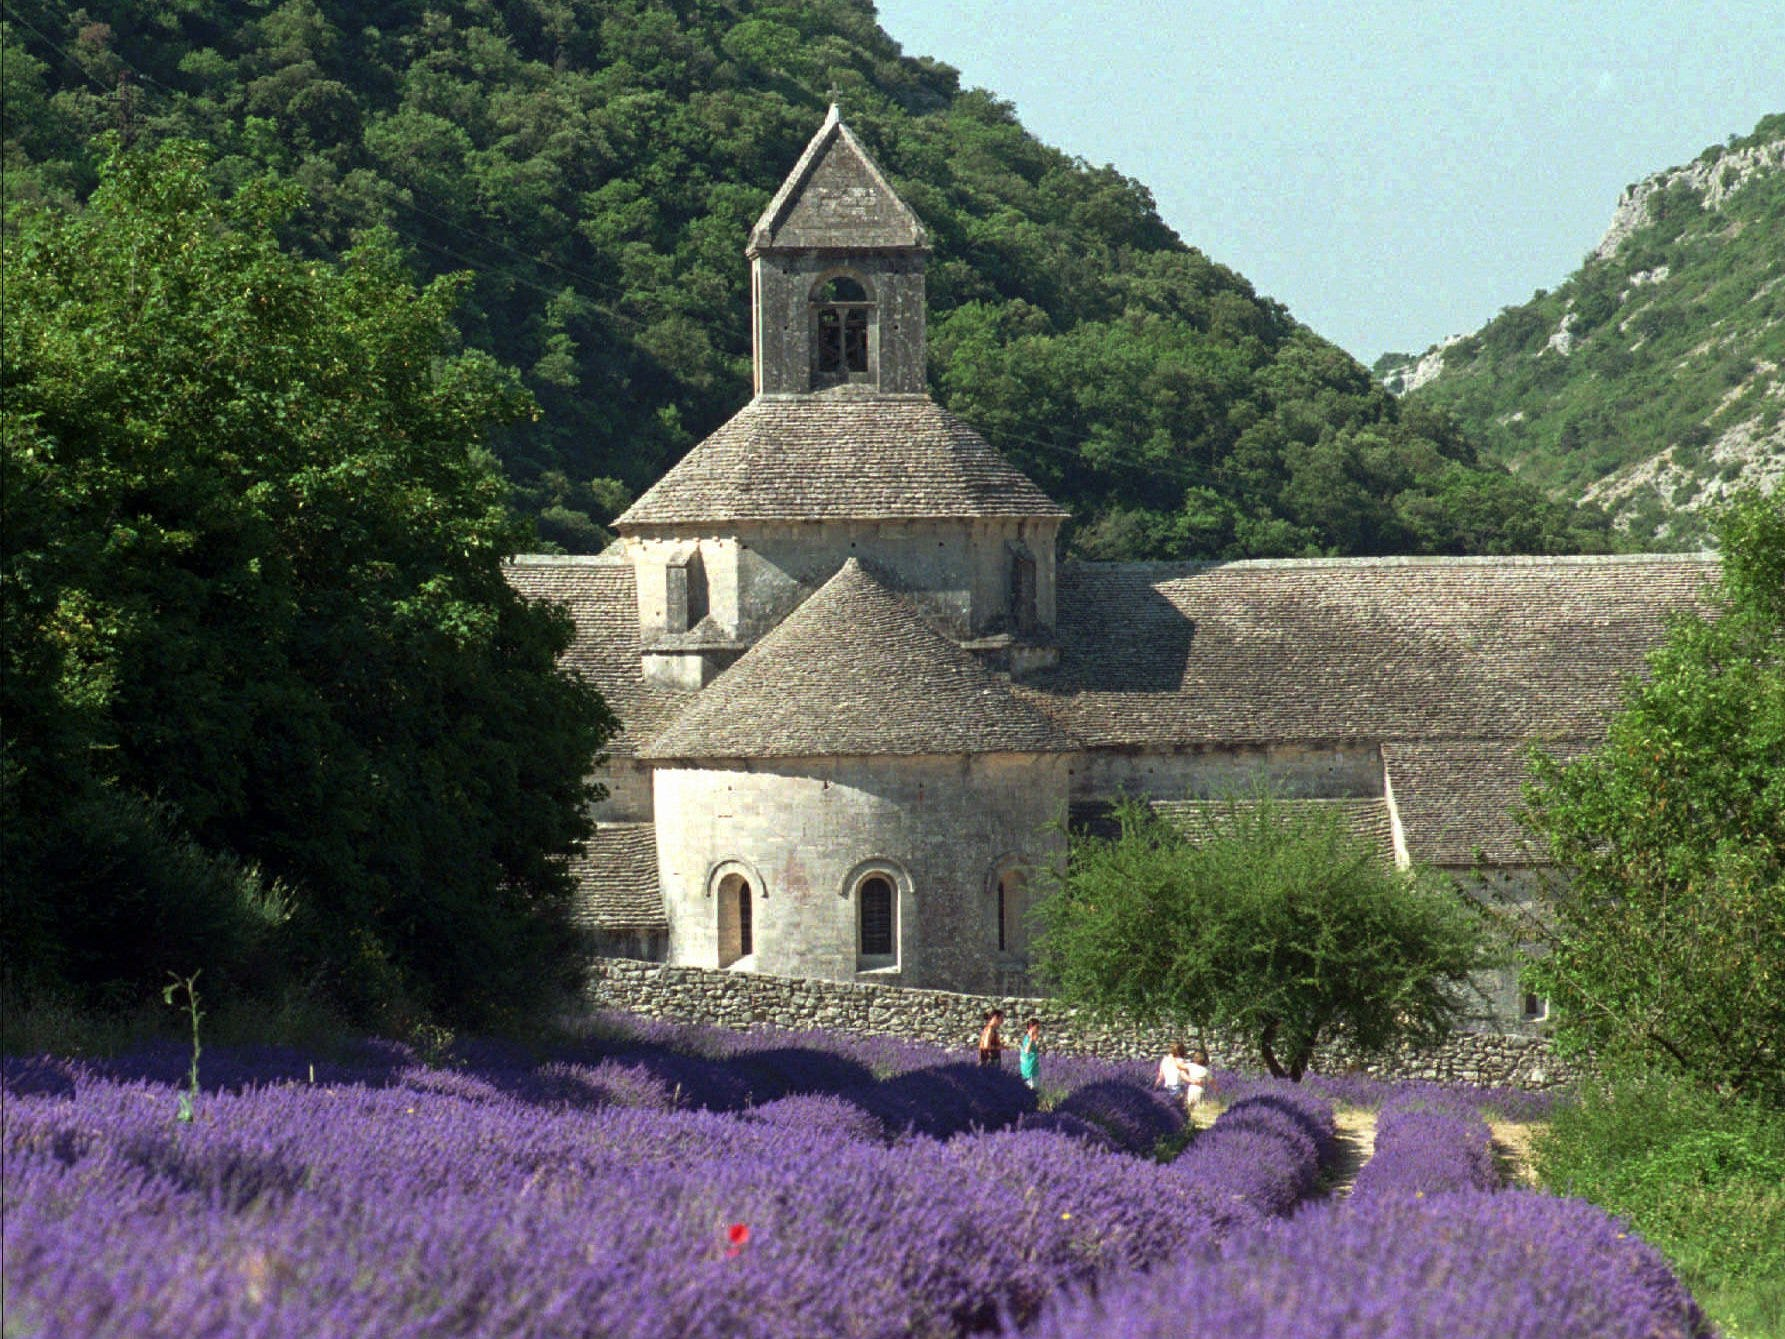 ADV. FOR WED. AMS, AUG. 7--People walk past a lavender field in front of the Abbey of Senanque, outside of Avignon, in the Provence region of southern France July 17, 1996. The heady fragrance of fresh-crushed lavender and endless vistas of sunparched wilderness have made this region one of the world's most popular tourist destinations. (AP Photo/Patrick Gardin) ORG XMIT: NY325